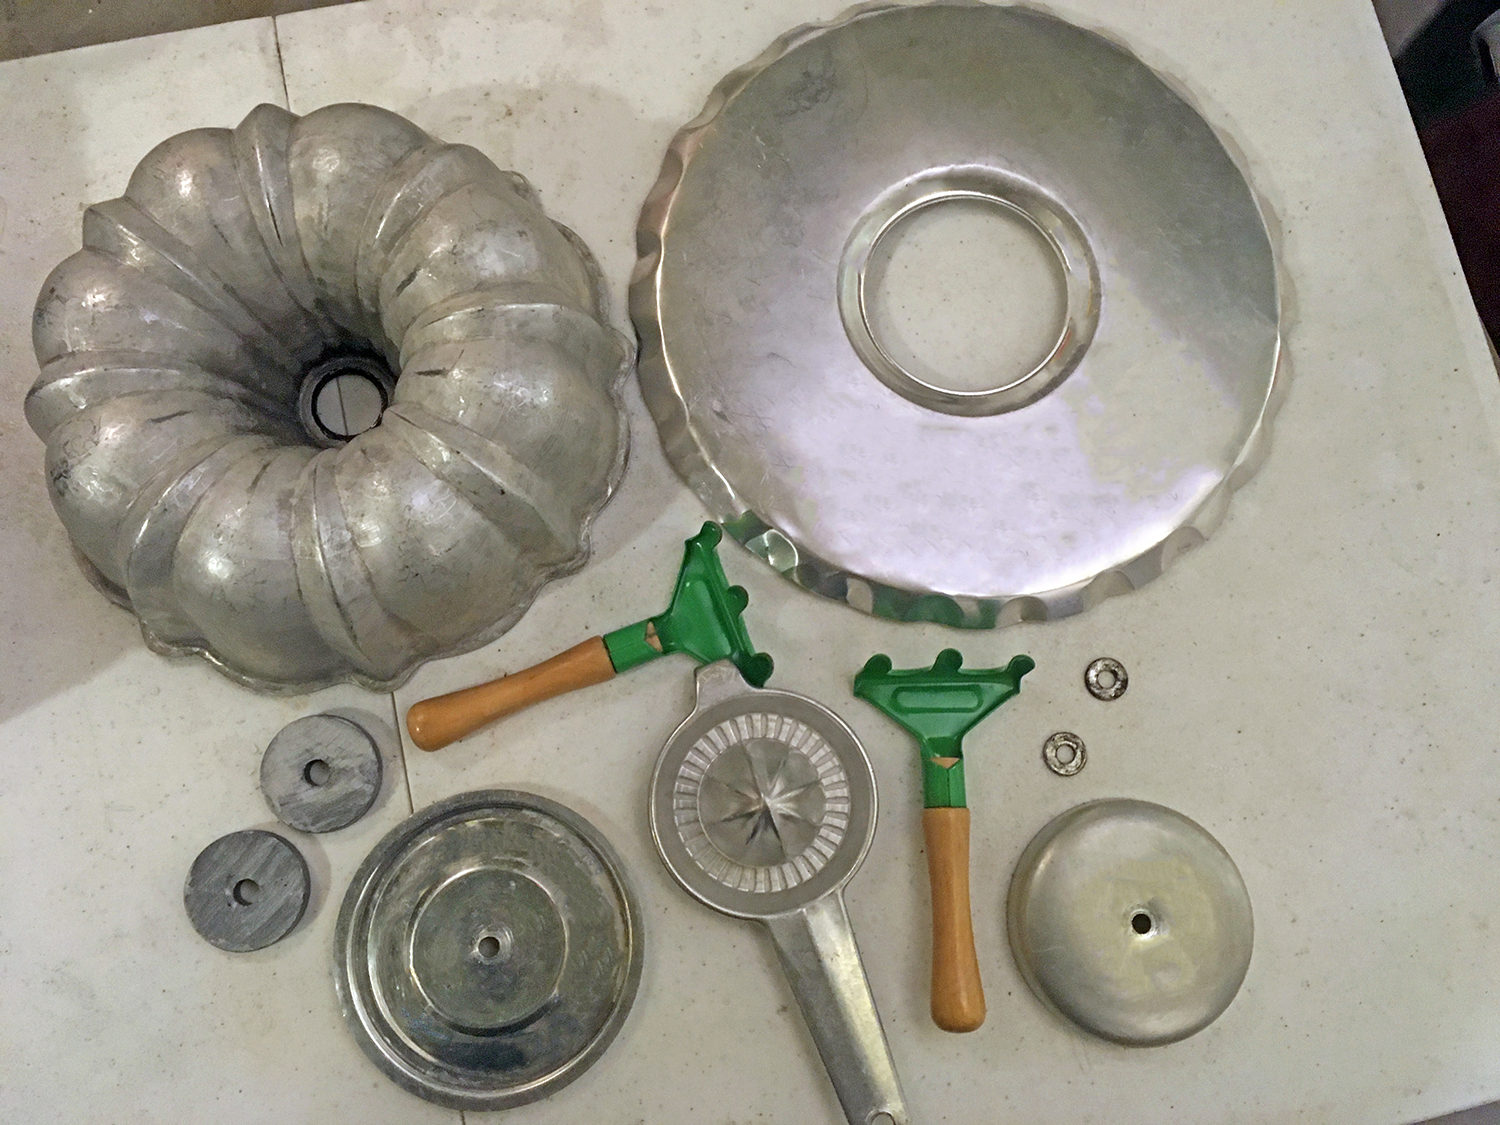 Bundt pan, aluminum juicer, garden trowels and other parts to make a junk turkey assemblage with